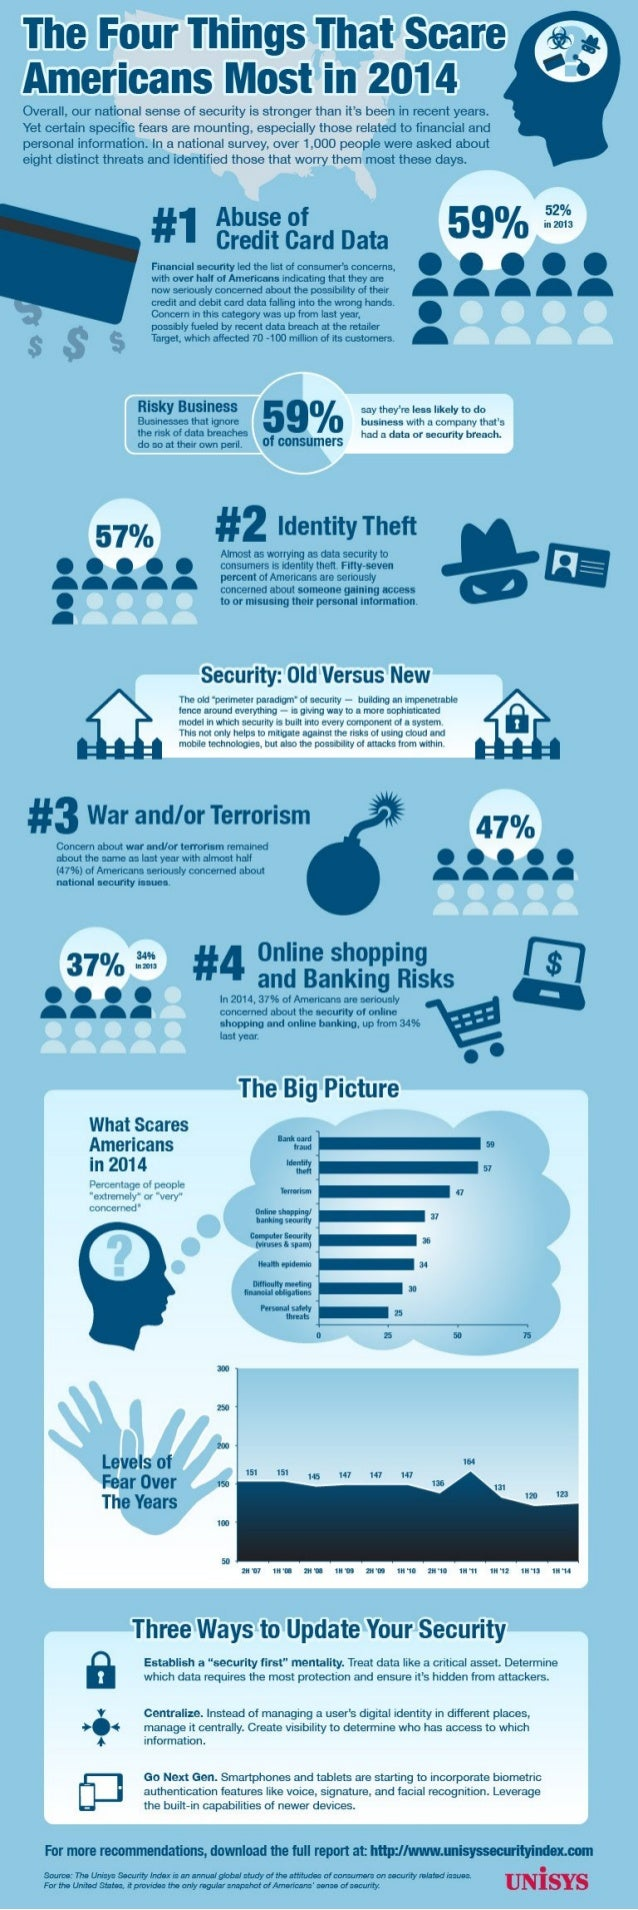 Unisys Security Index Infographic: The Four Things that Scare Americans Most in 2014